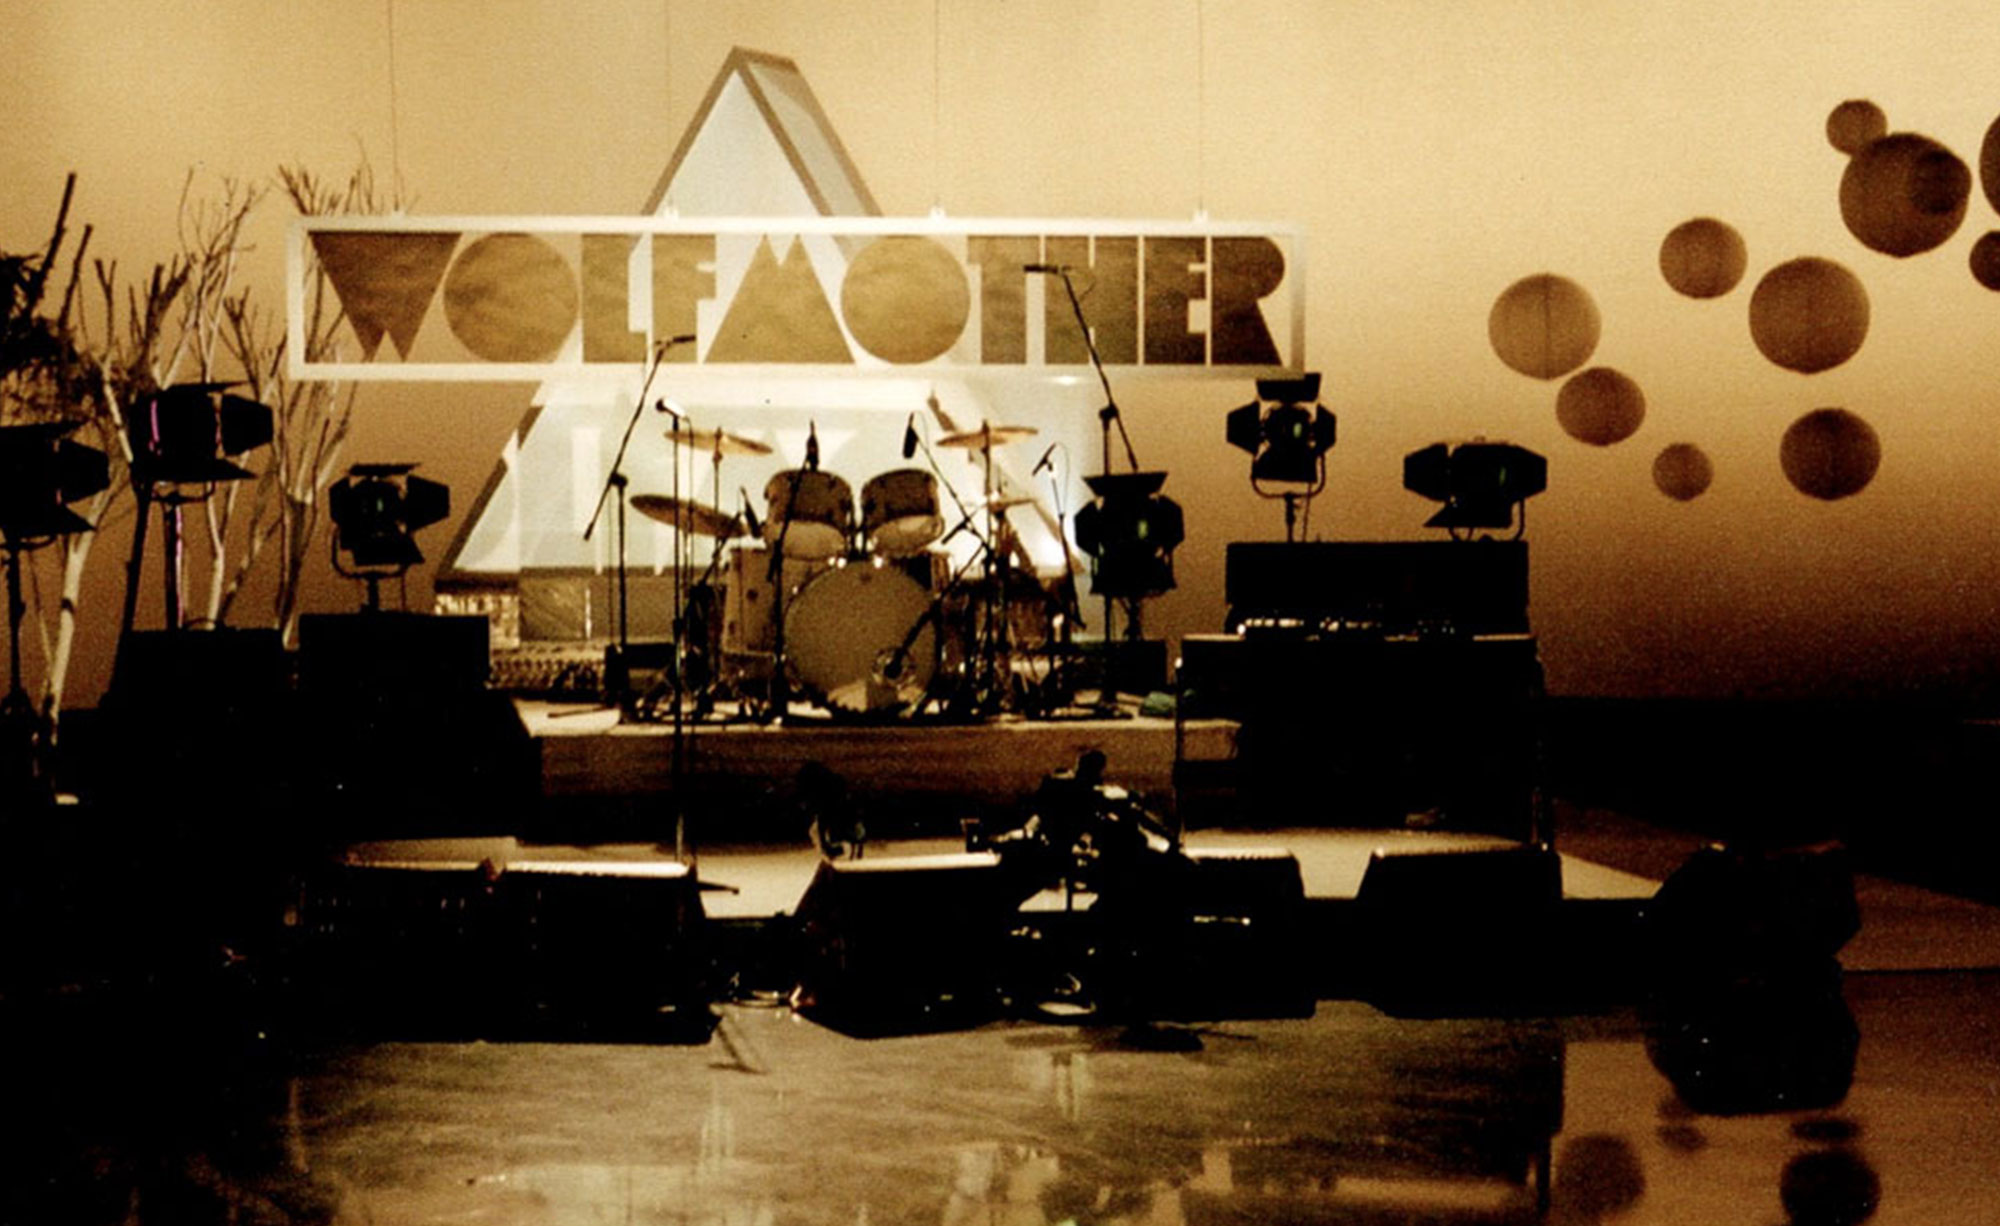 SET DESIGNER: WOLFMOTHER, JTV, ABC, 2006